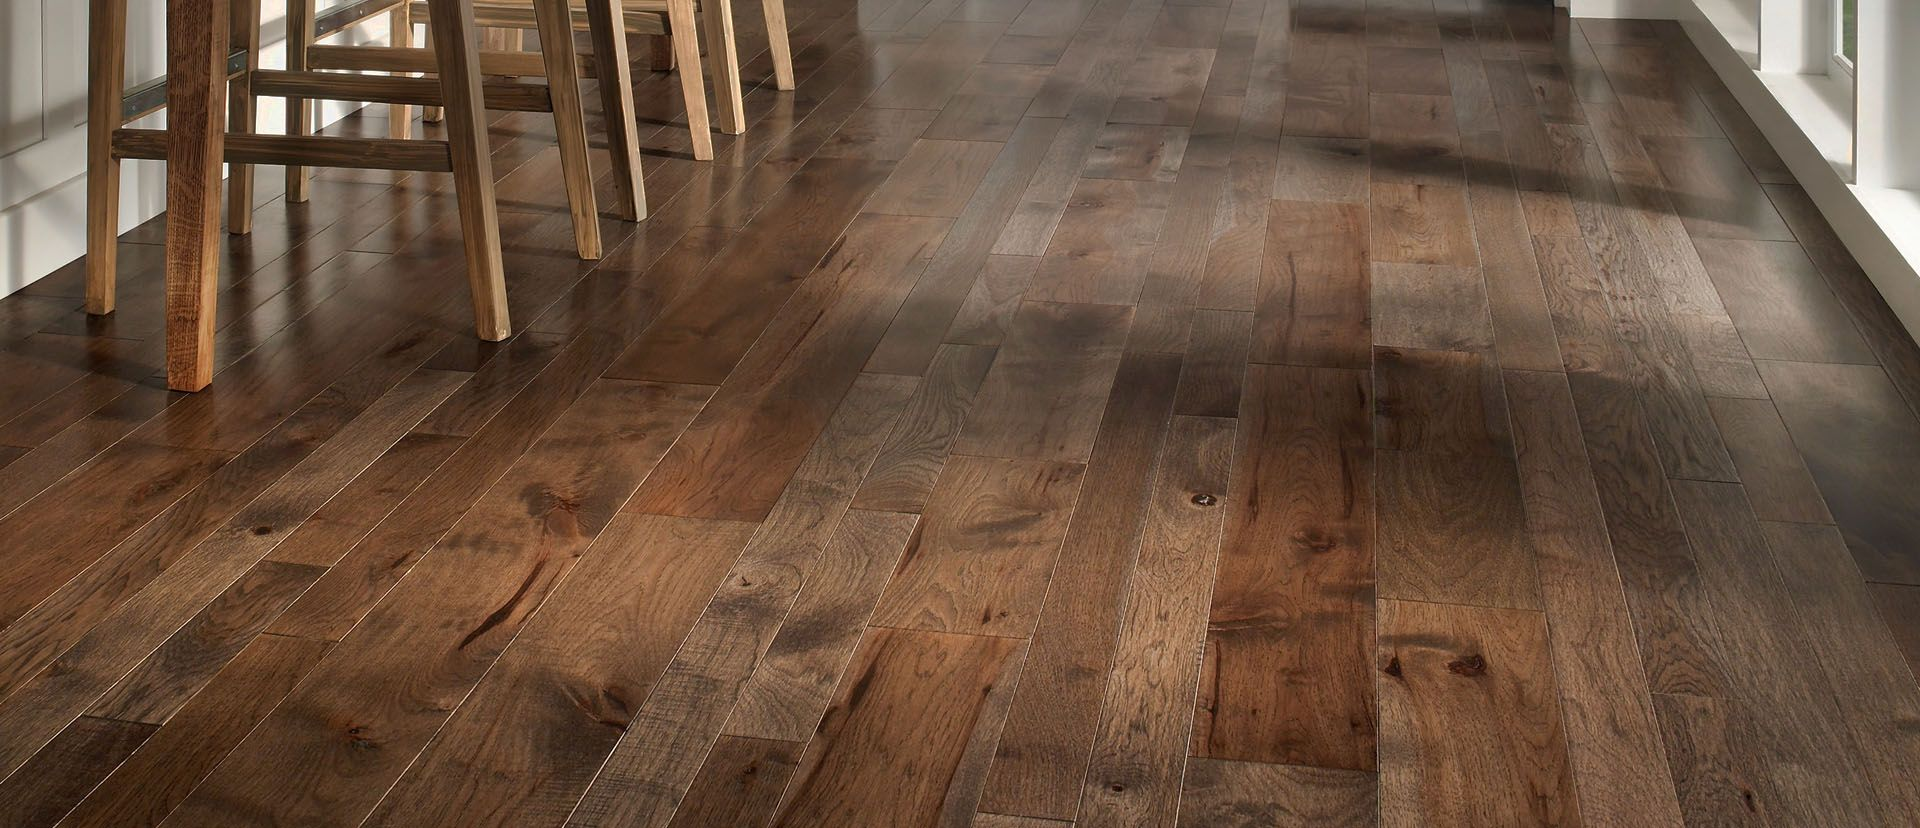 Beautiful Kitchen Hardwood Floor